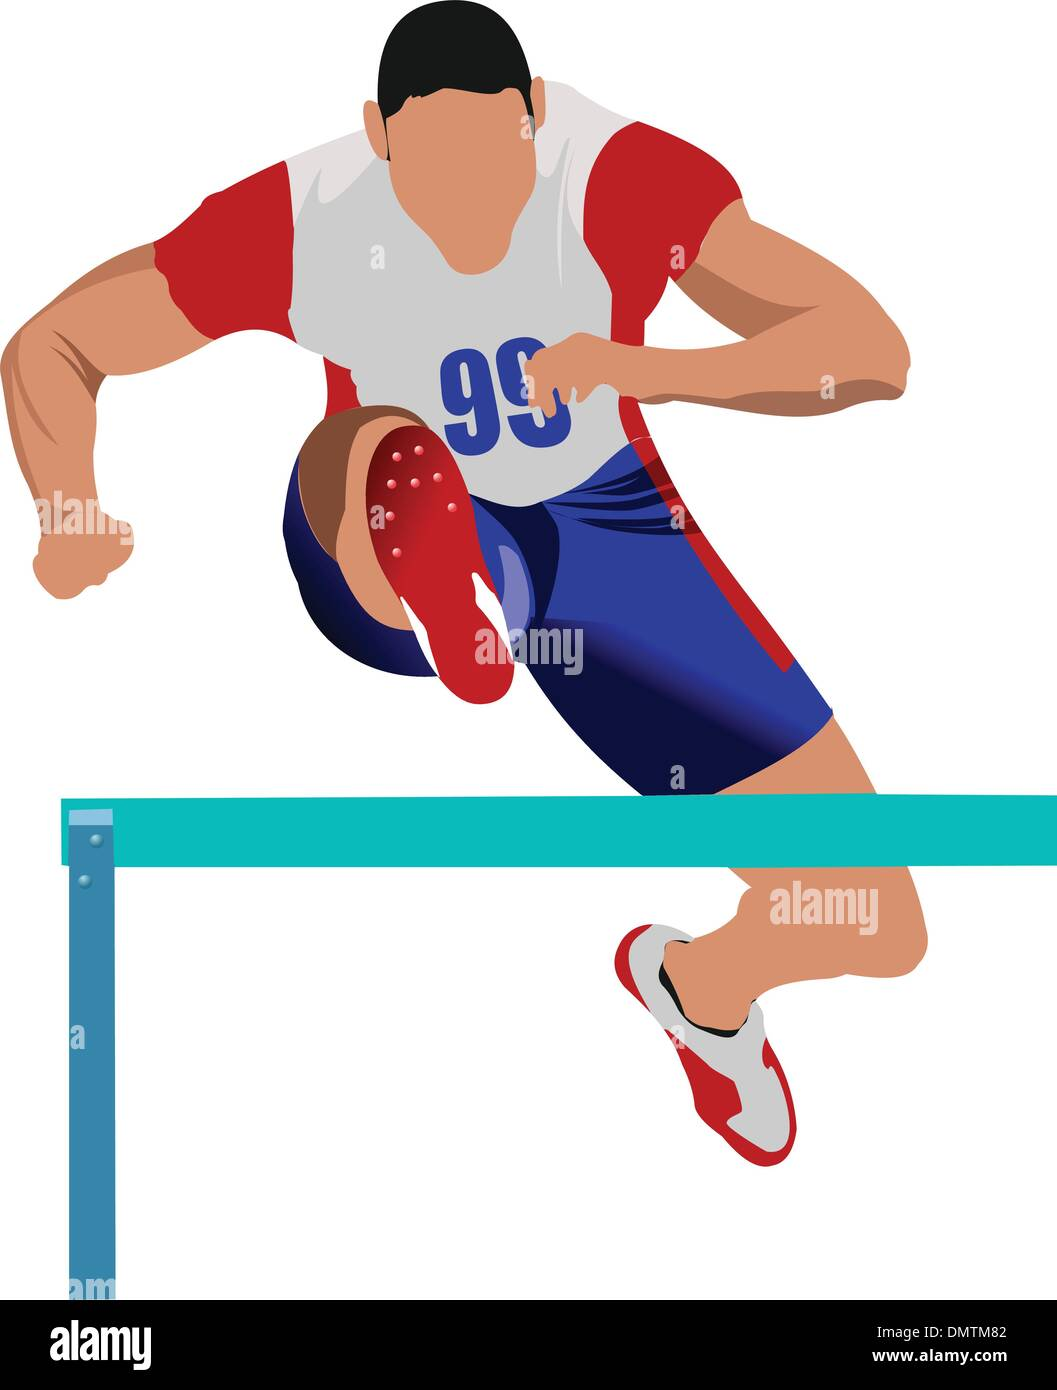 Athlete pole vaulting. . Track and field. Vector illustration. Stock Vector